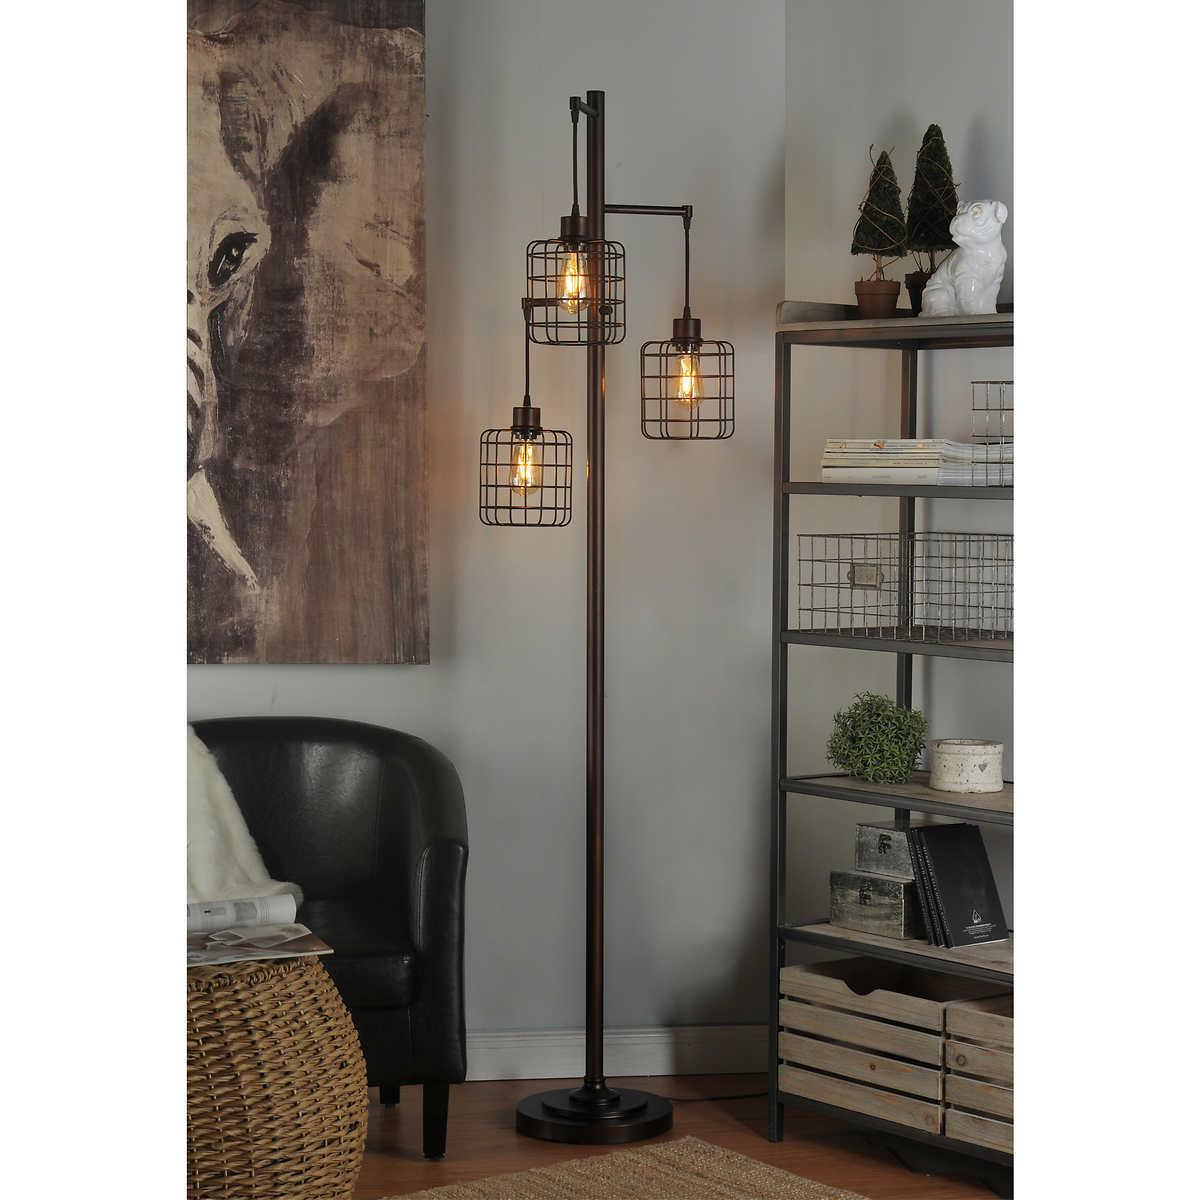 piper lamp 72 inch tall rubbed bronze